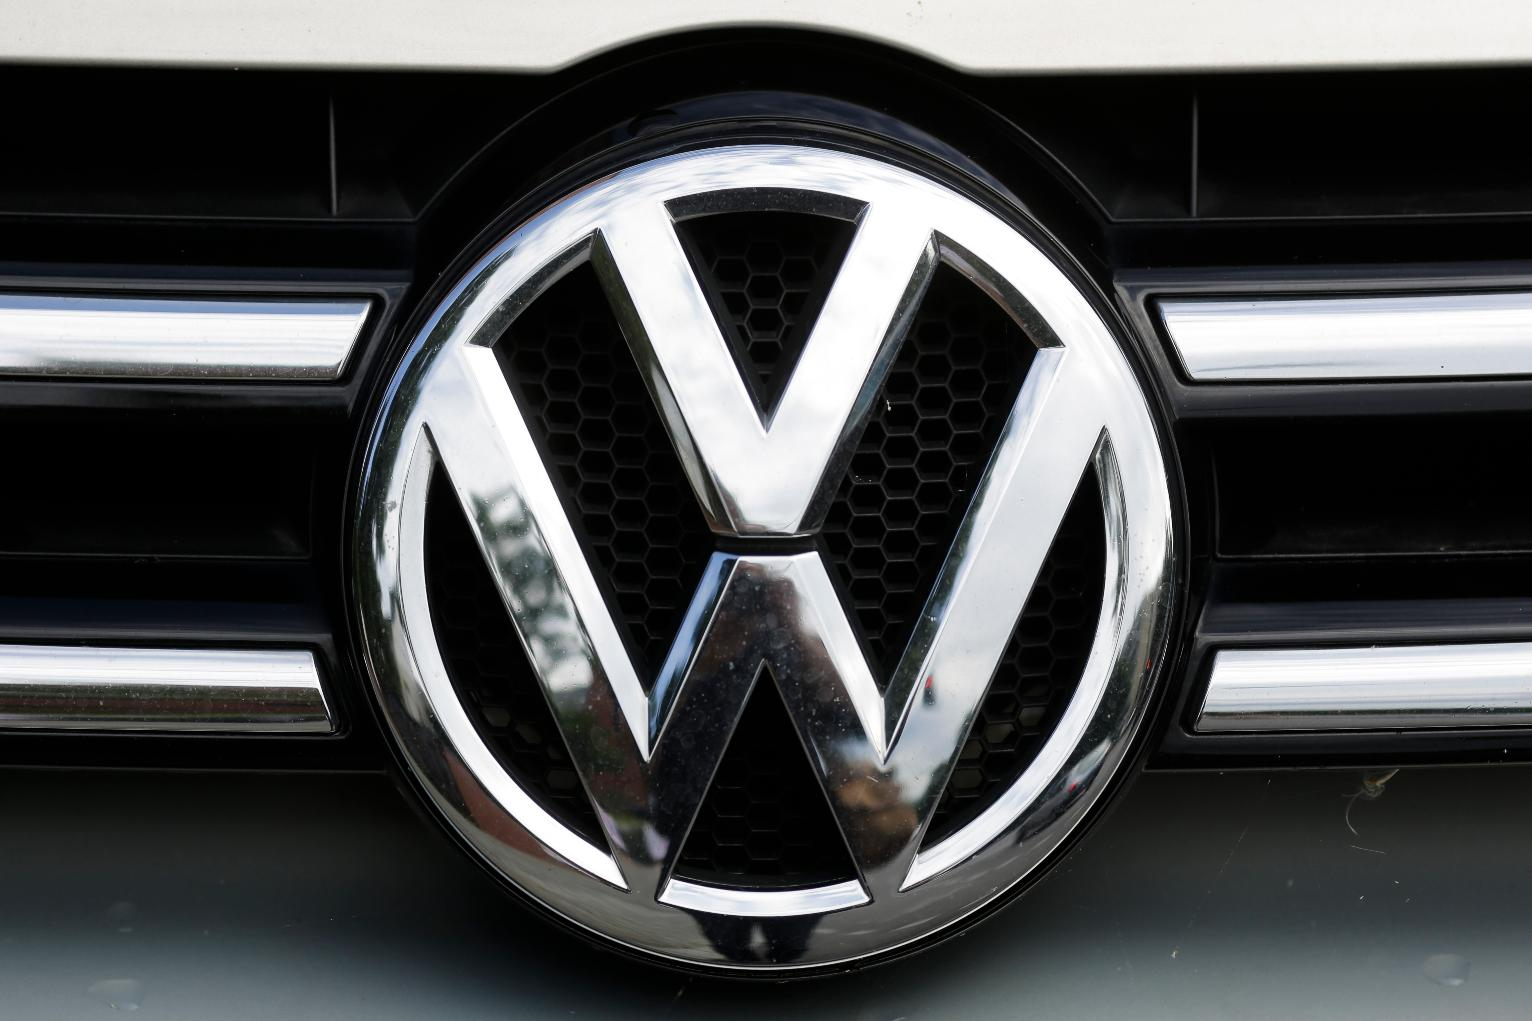 Us probes effectiveness of vw air bag wiring recall business us probes effectiveness of vw air bag wiring recall business news us news biocorpaavc Images